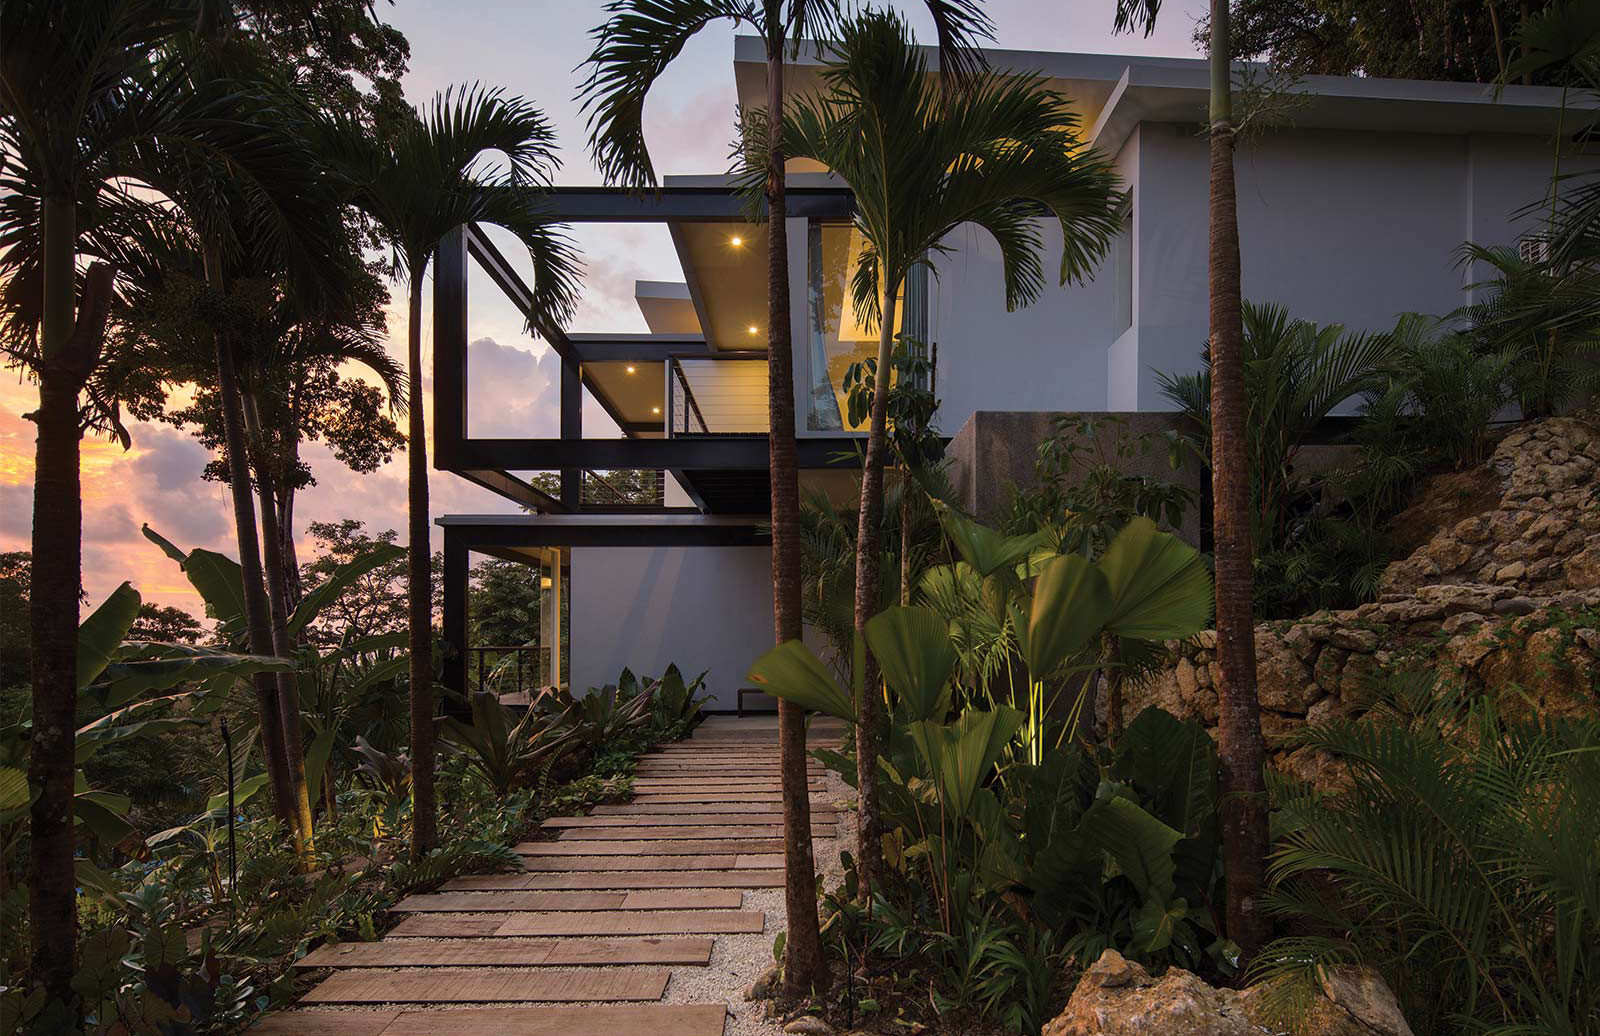 Casa BriBri for rent in Costa Rica